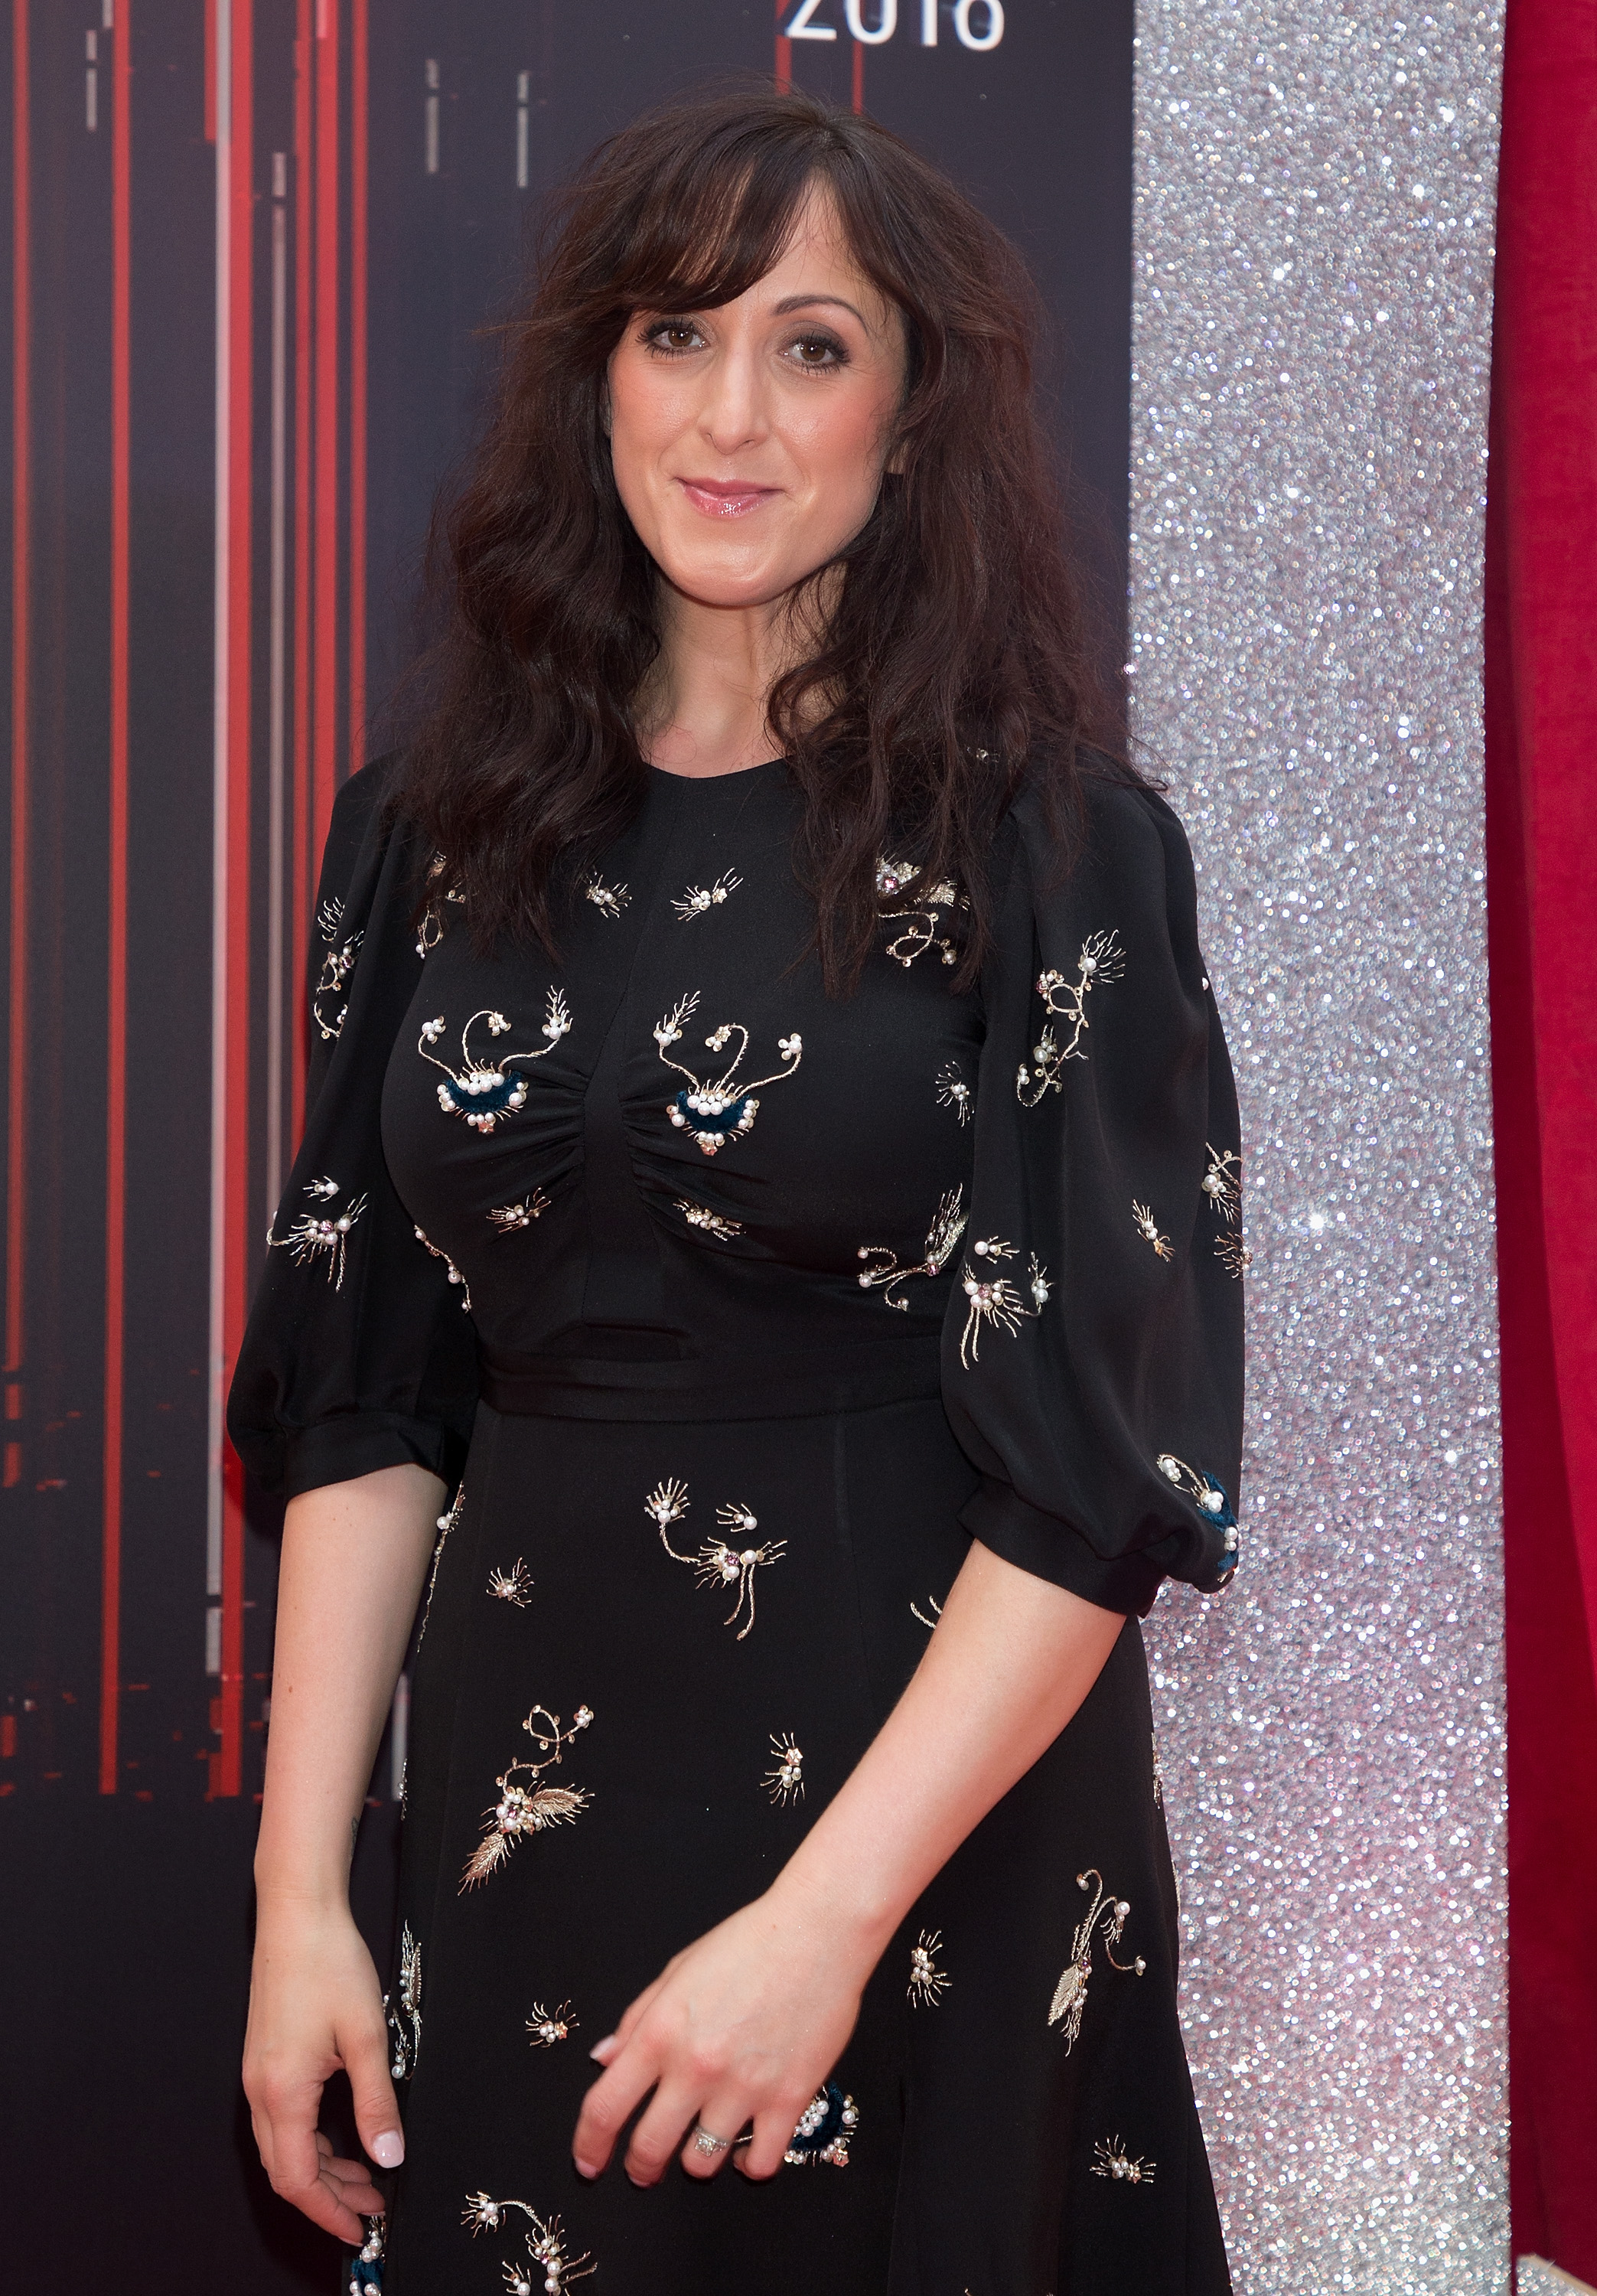 Natalie Cassidy on the red carpet